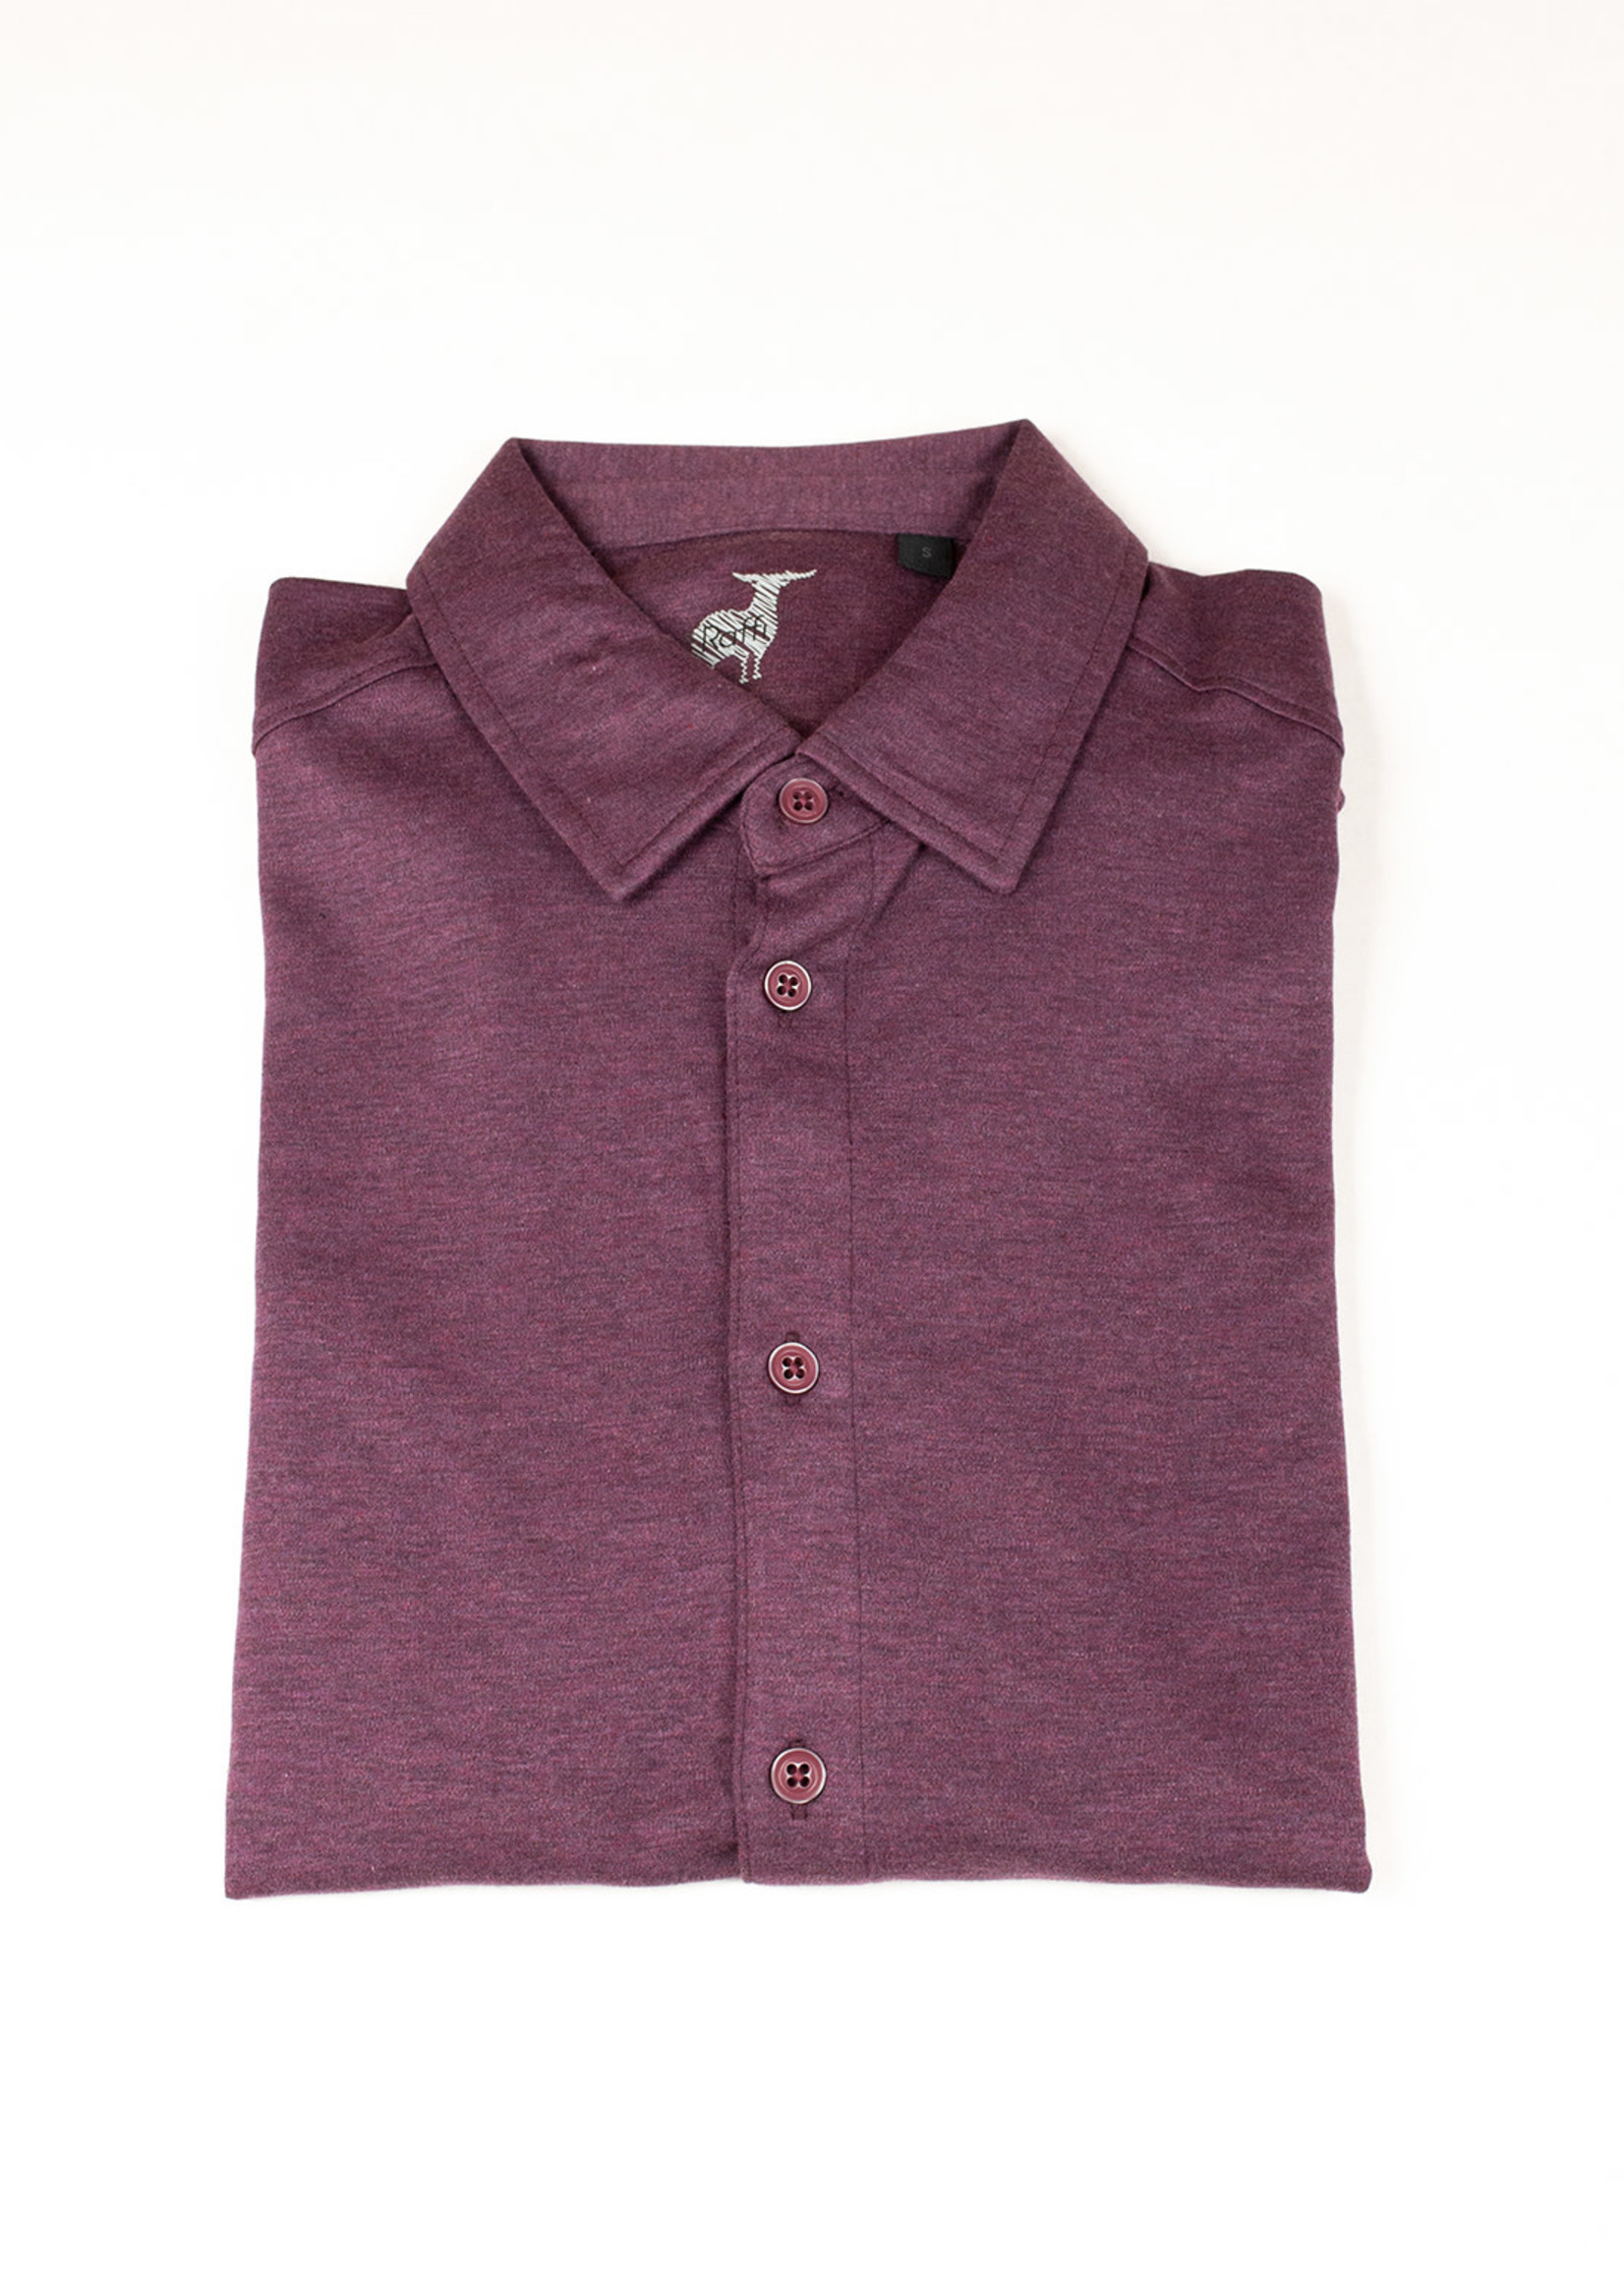 Raffi Raffi Aqua Cotton LS Button Down Wineberry